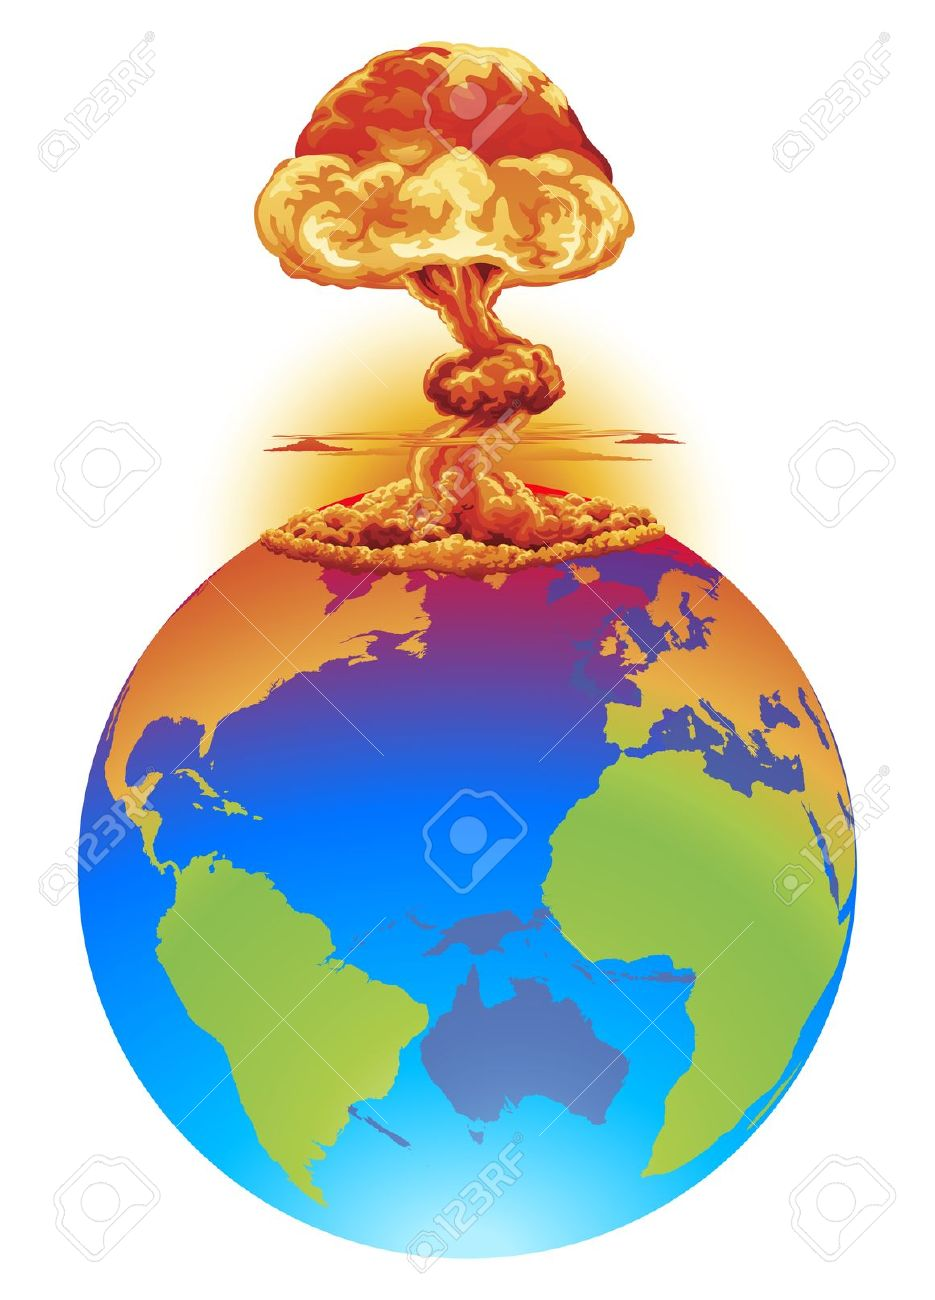 The World Is Coming to an End Clip Art.